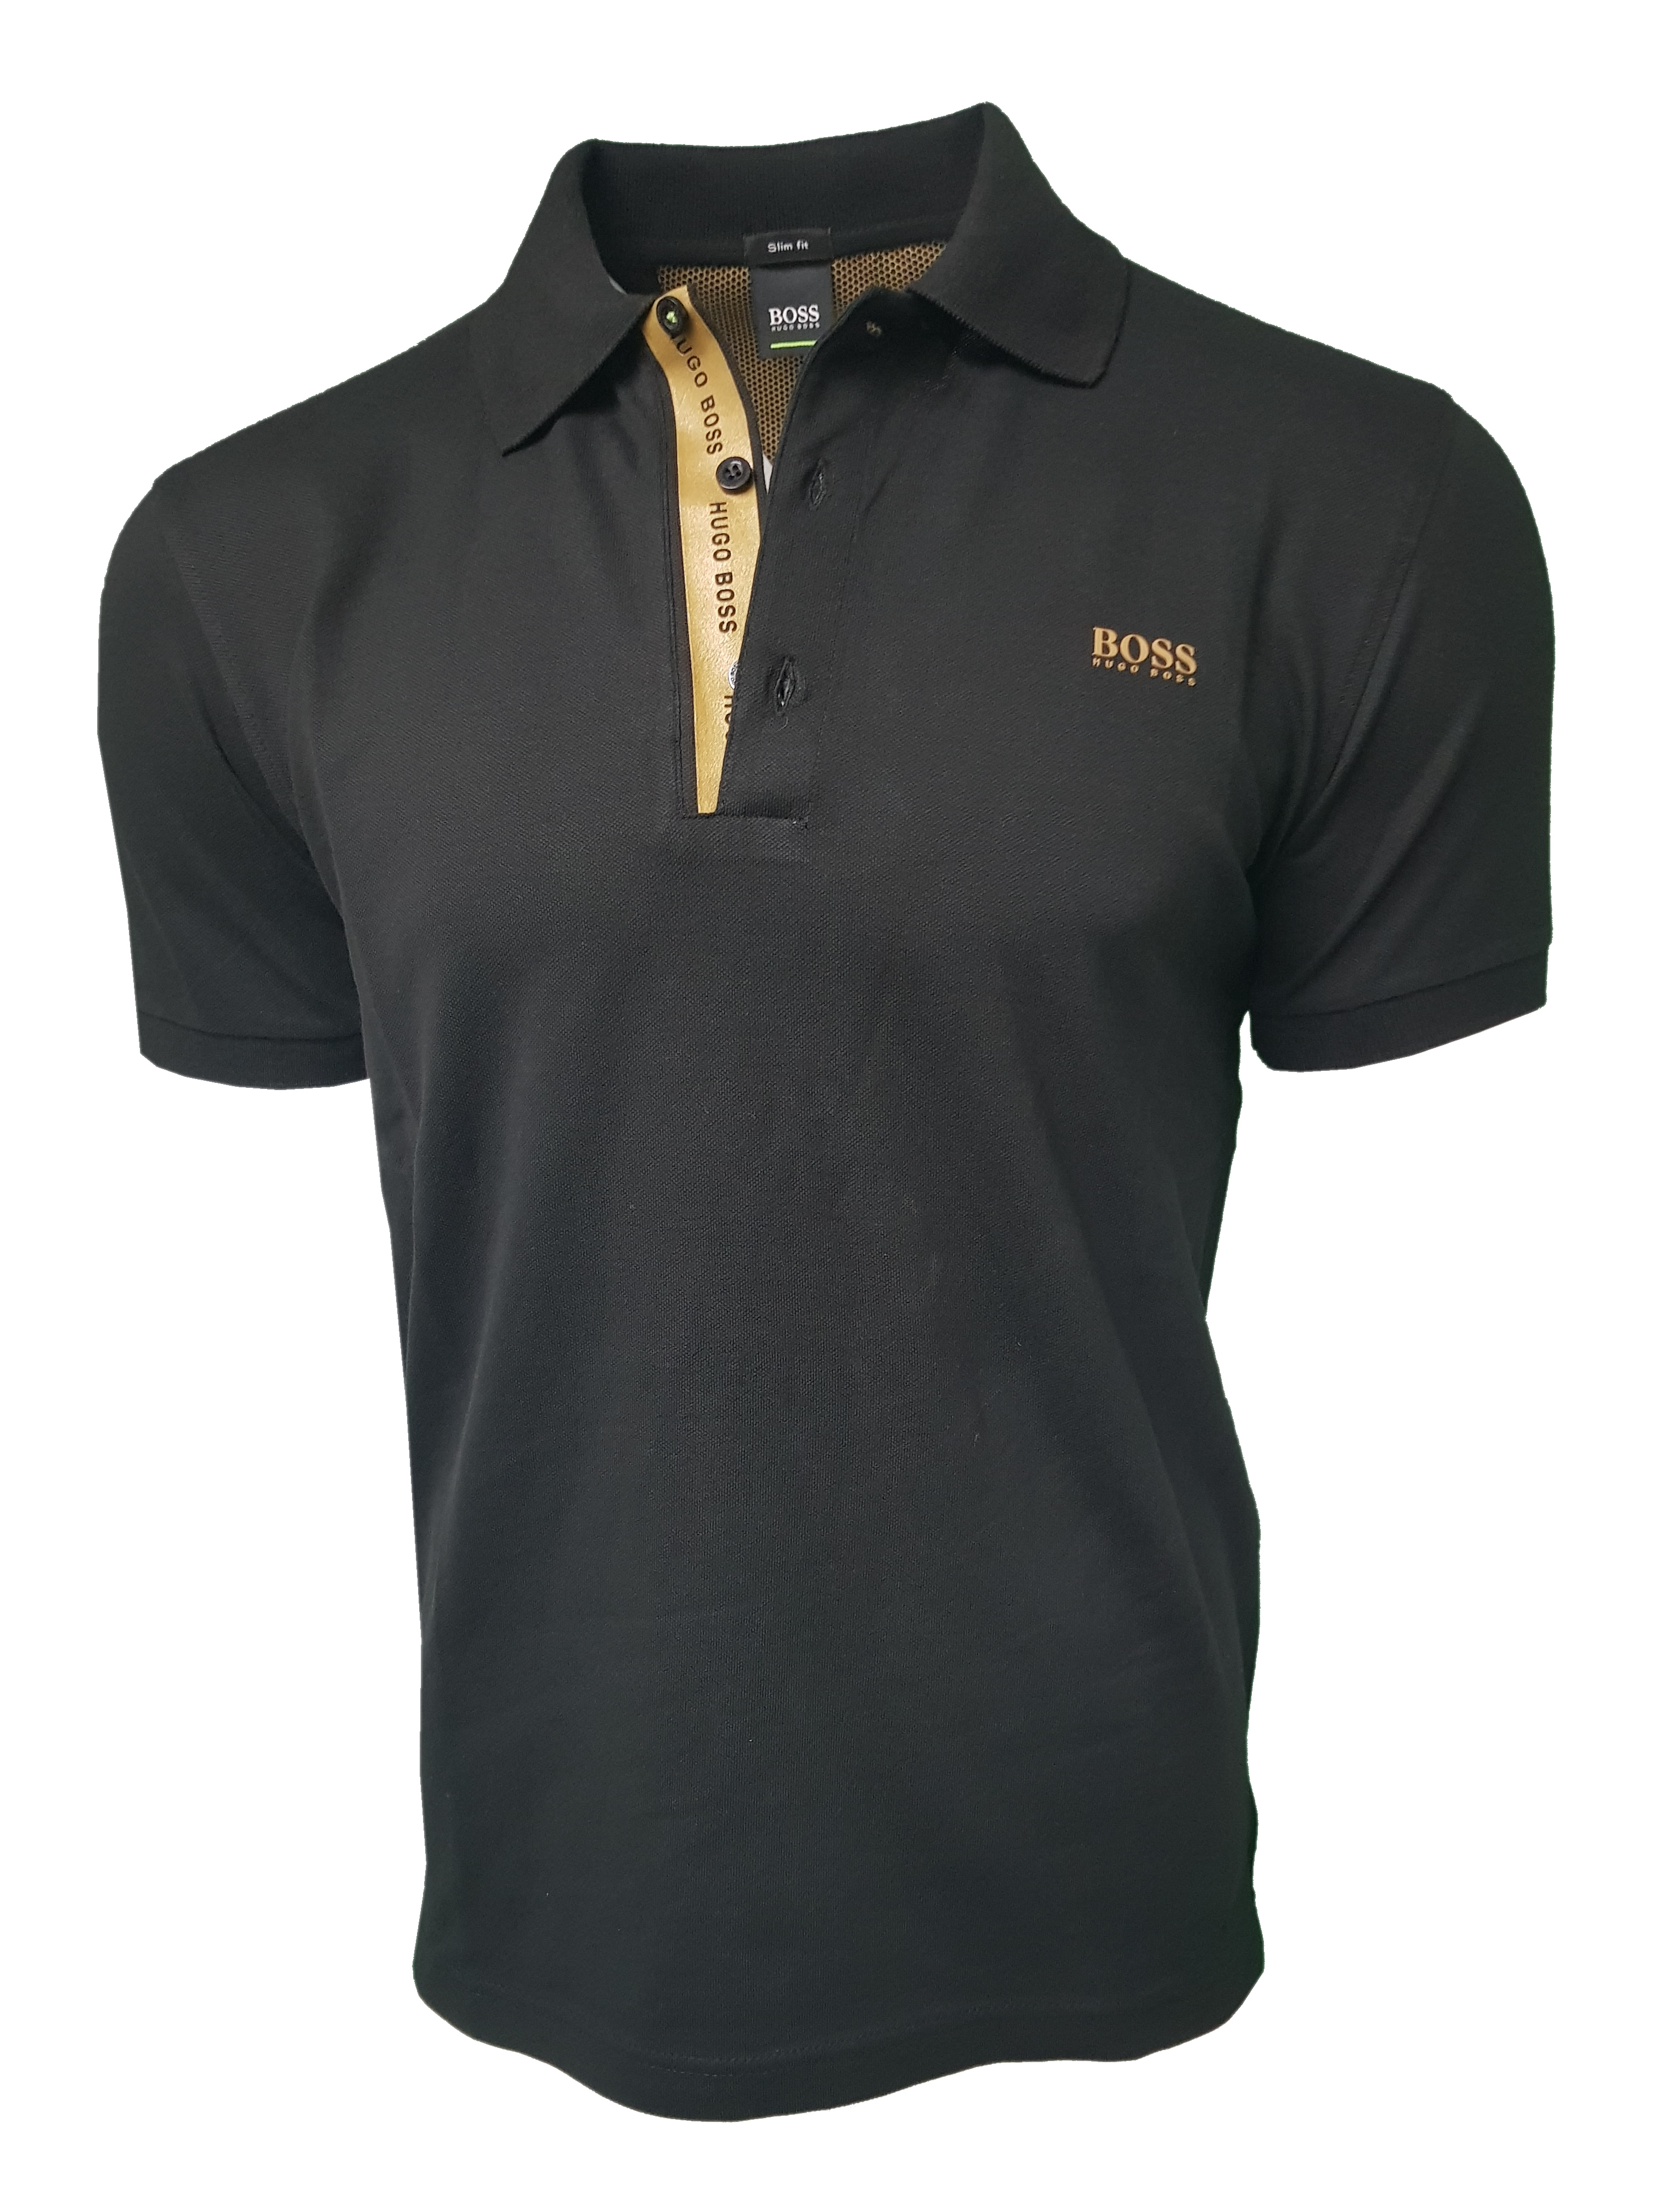 46f5d8804bd Hugo Boss Polo Shirt. Short Sleeve with Golden Placket in Black ...